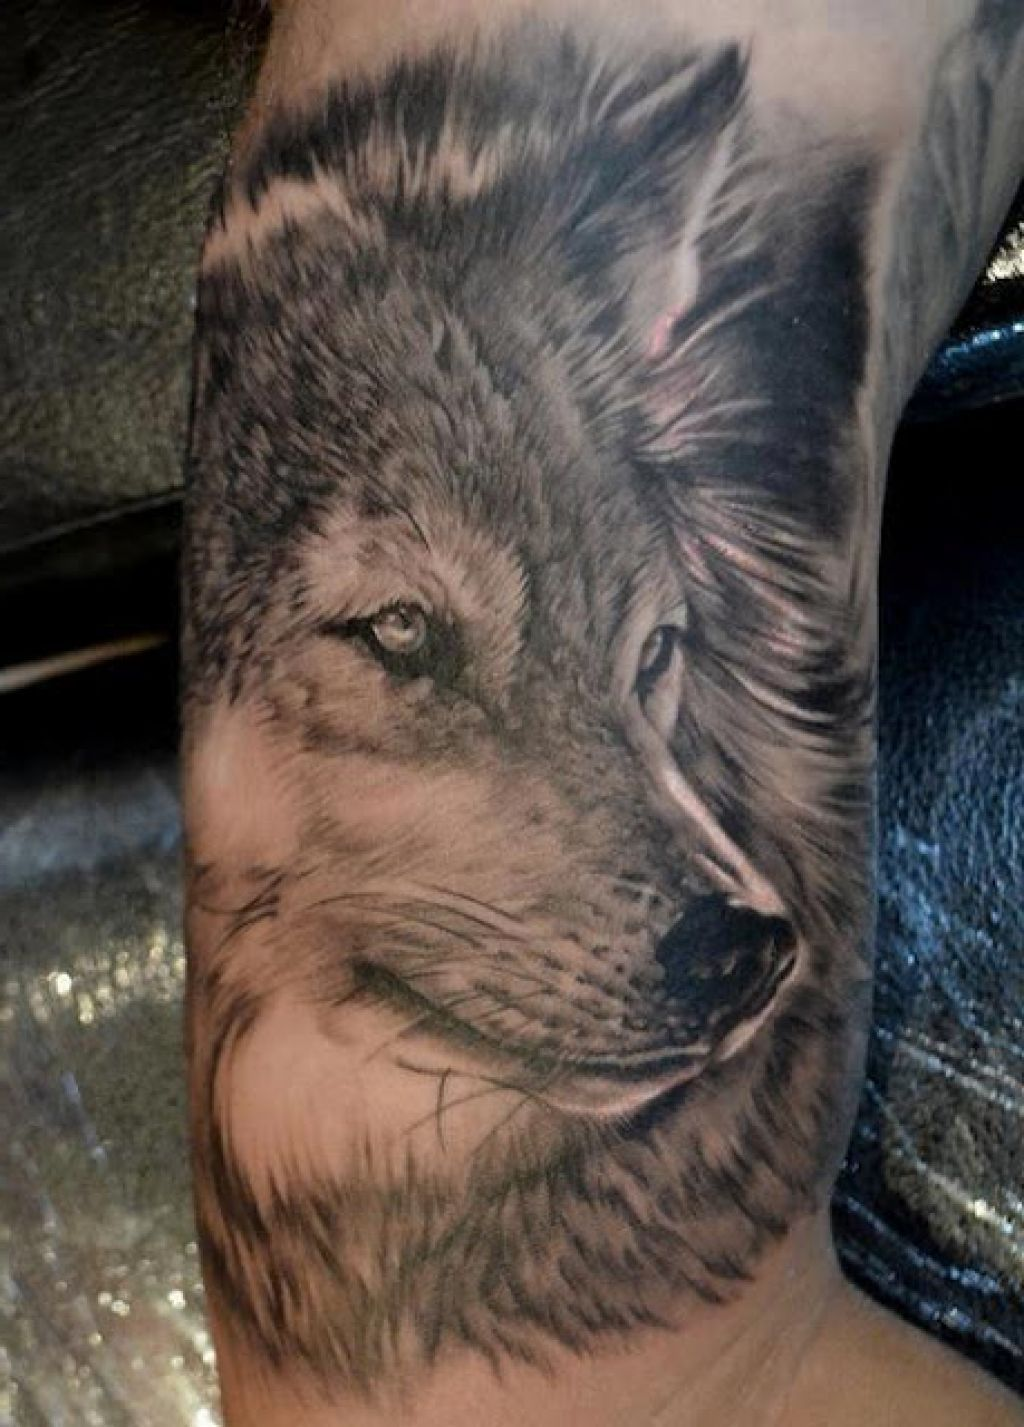 25 Amazing Wolf Tattoos Design Ideas is part of Amazing Wolf Tattoo Ideas That Will Blow Your Mind Bafbouf - Wolf tattoo designs are meant for both men and women, You can get wolf tattoos in every size  check these Amazing Wolf Tattoos Design Ideas